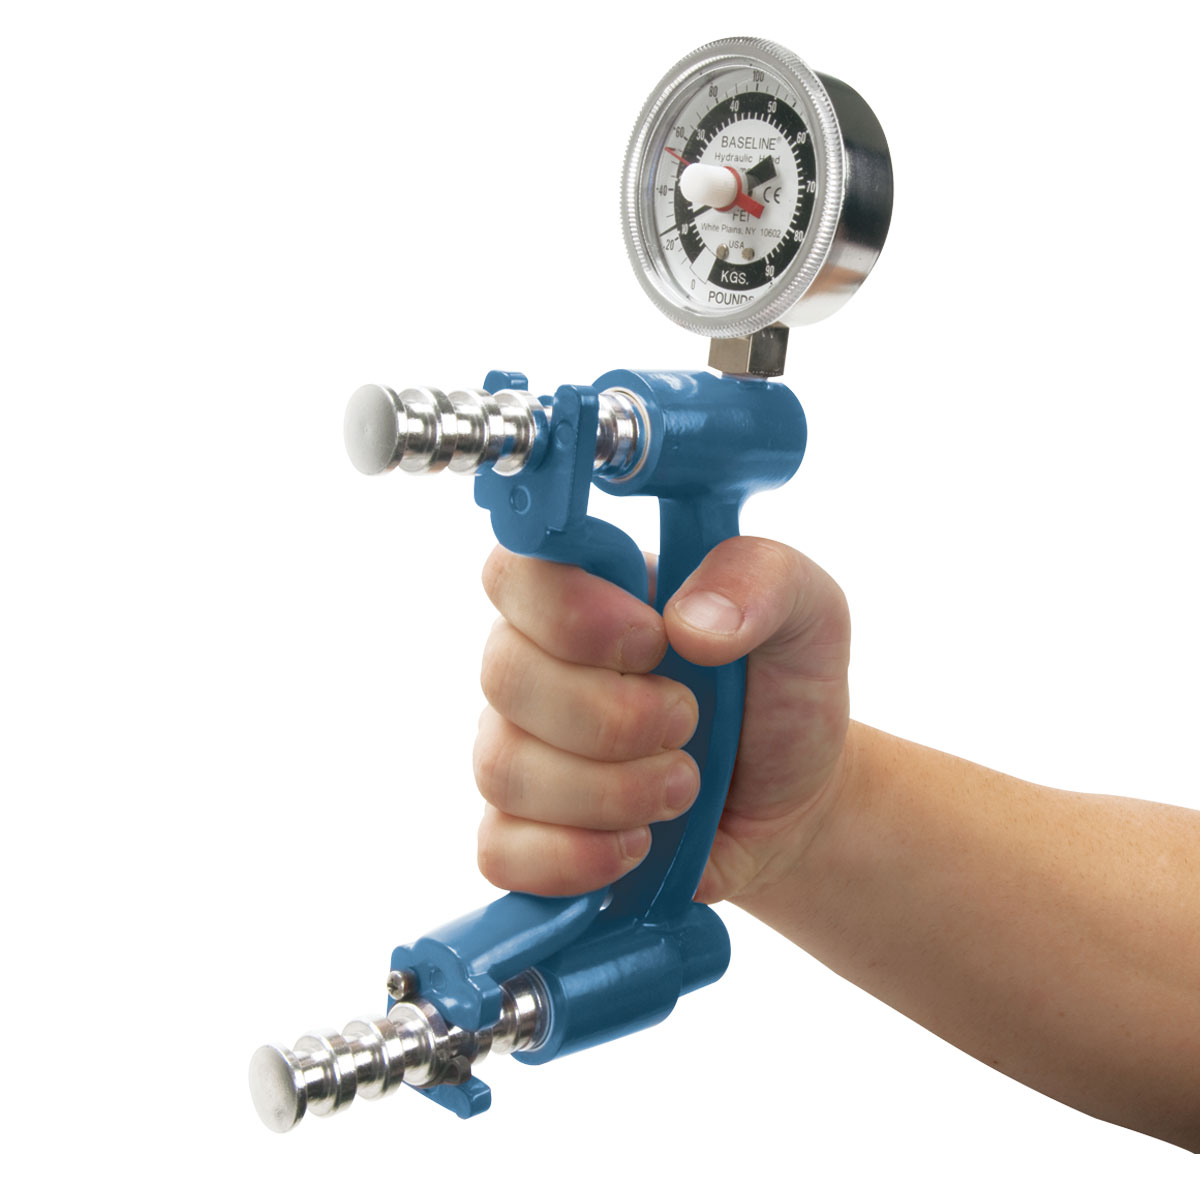 a close examination of the hand grip dynamometer As an assessment measure grip strength has been shown to have predictive  validity  grip strength can be measured quantitatively using a hand  dynamometer  in all, 189 were found to be possibly relevant and retrieved in  full for detailed.